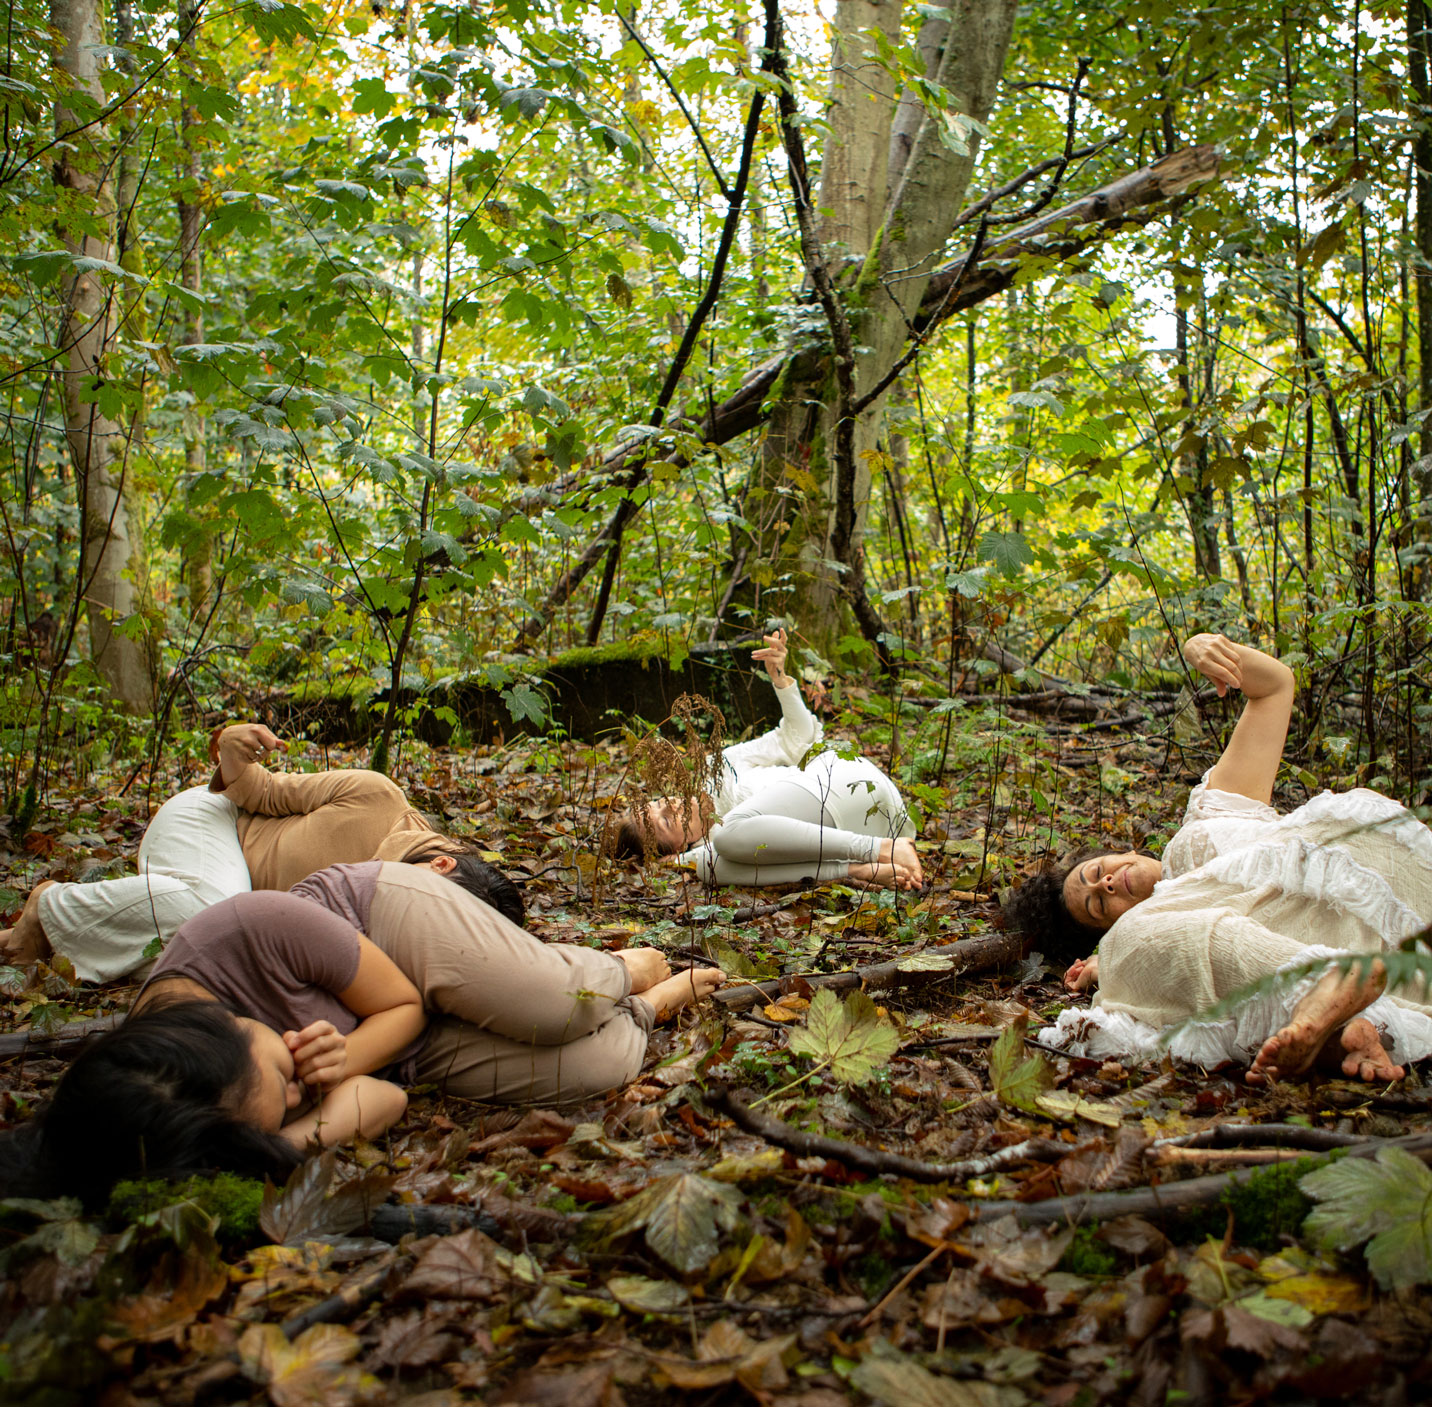 dance artists from Raven Spirit Dance Society perform in a forest